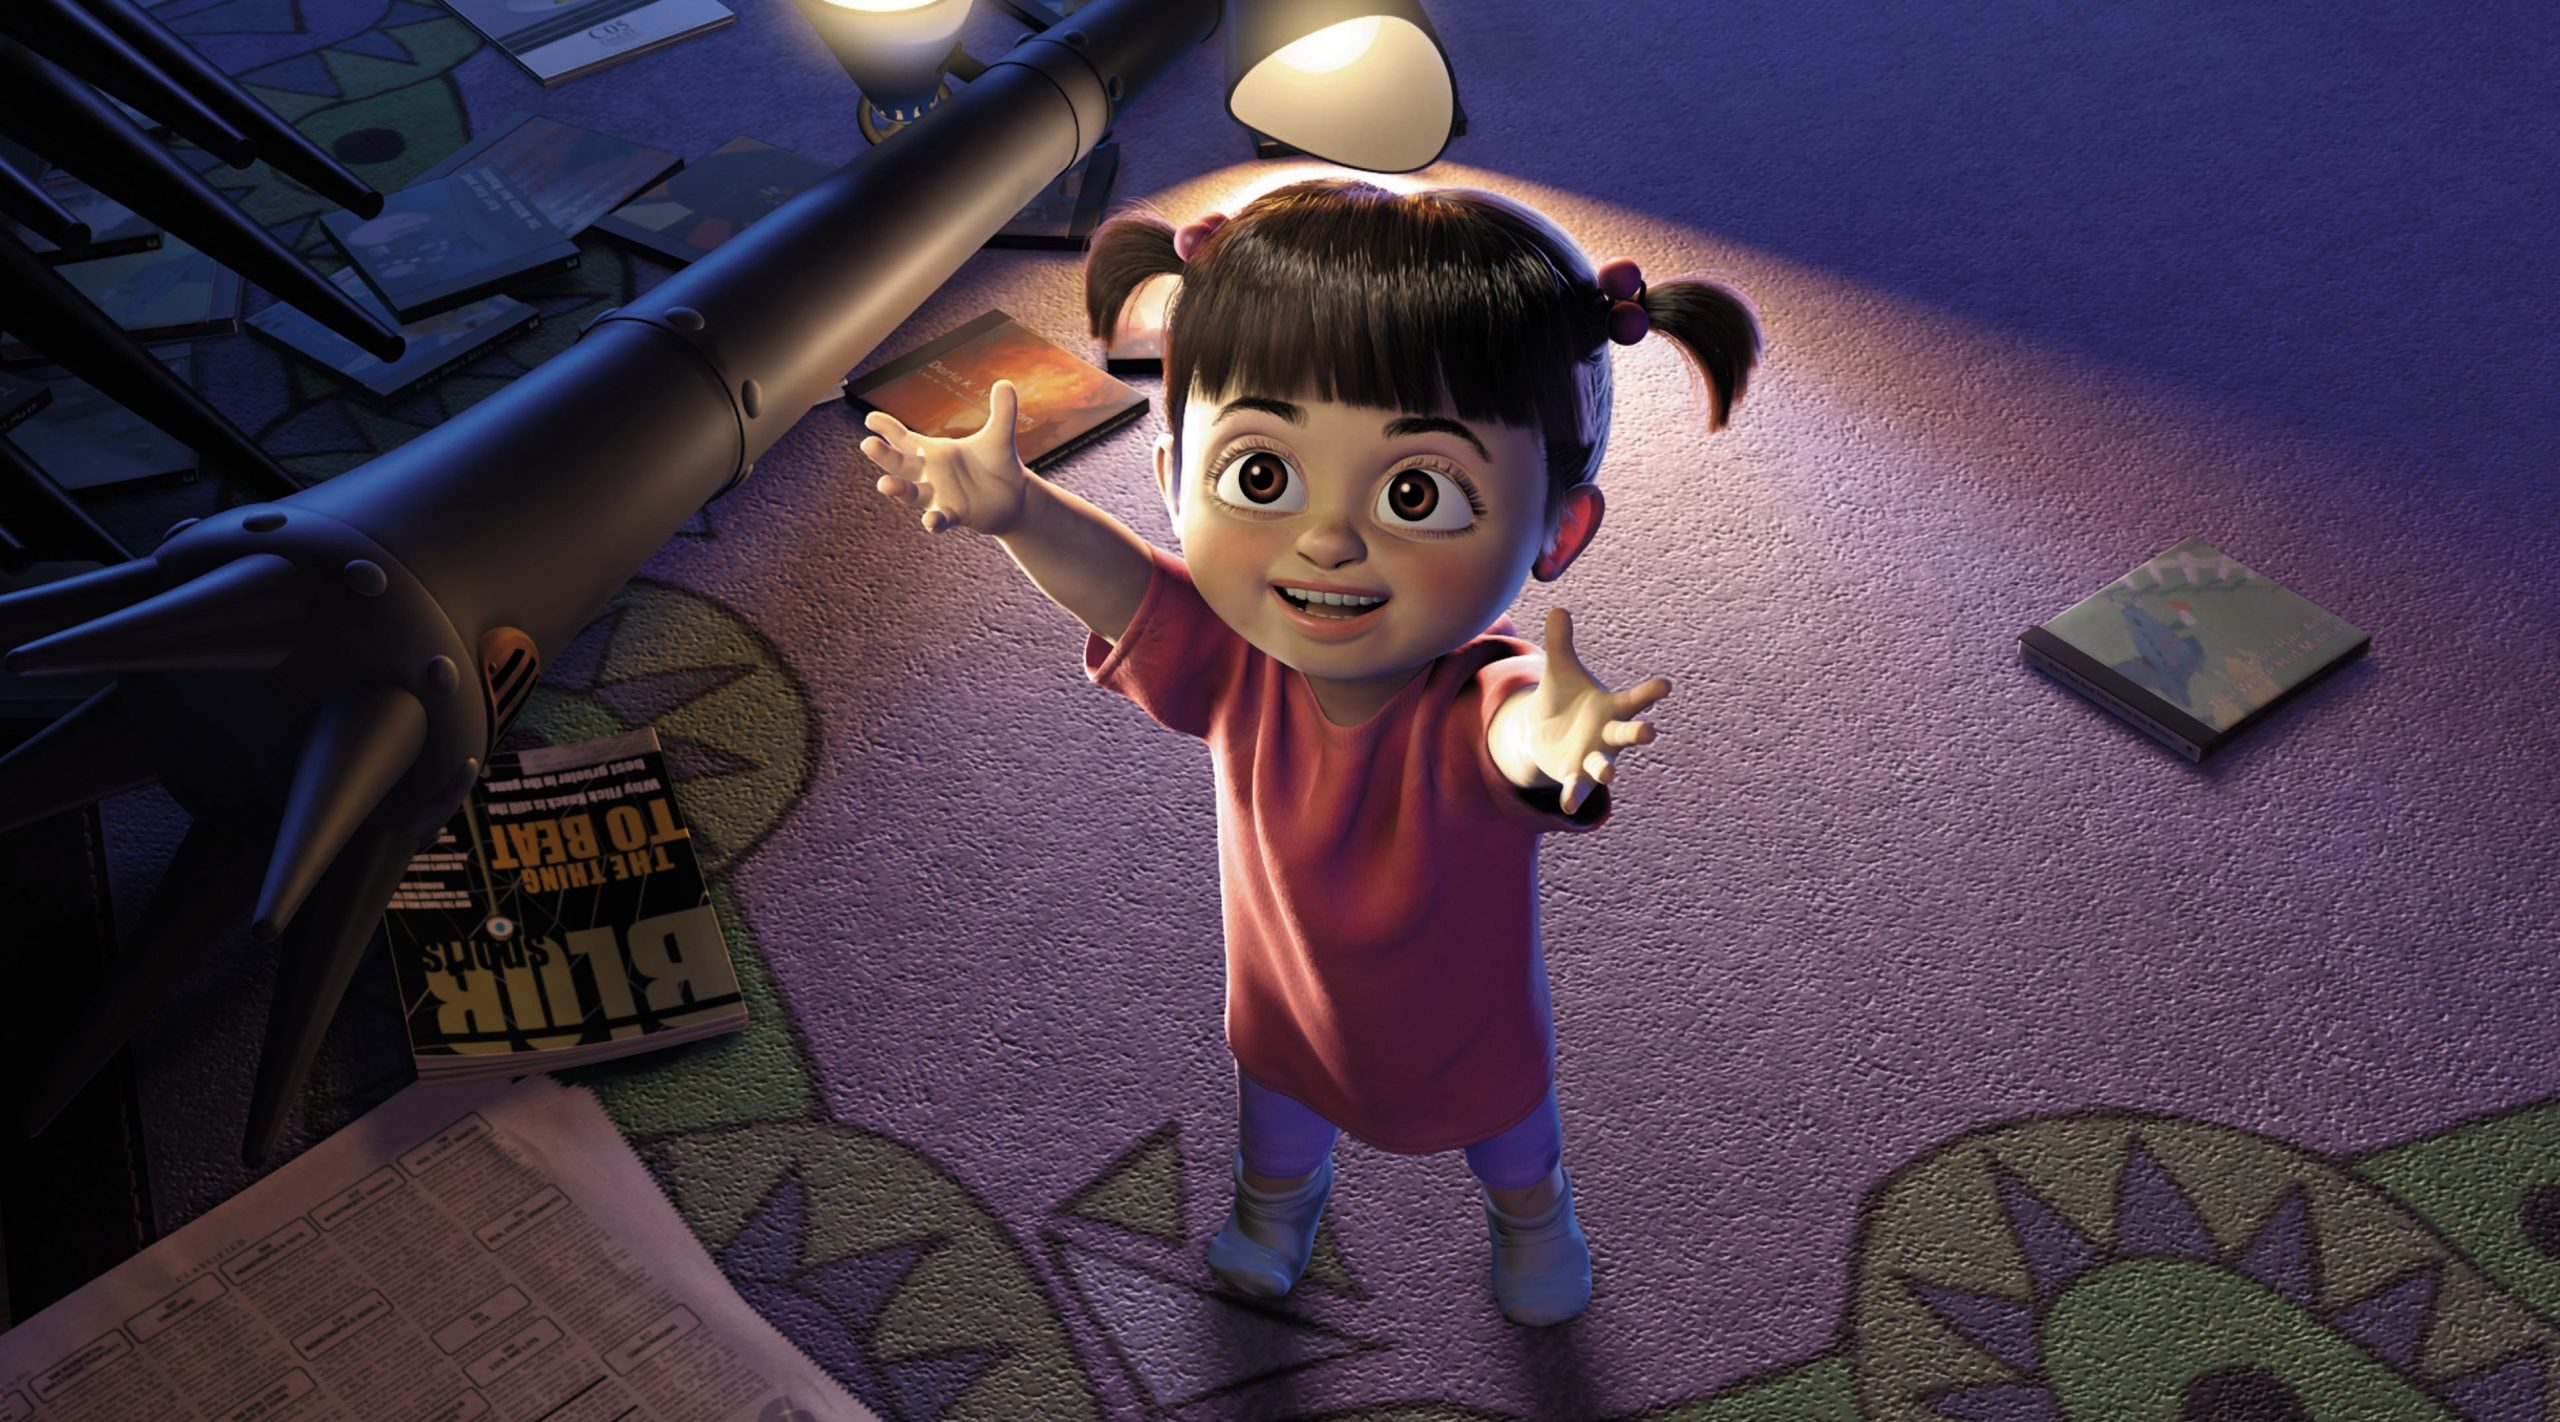 boo-from-monsters-inc-grew -up-to-be-violet-from-the-incredibles